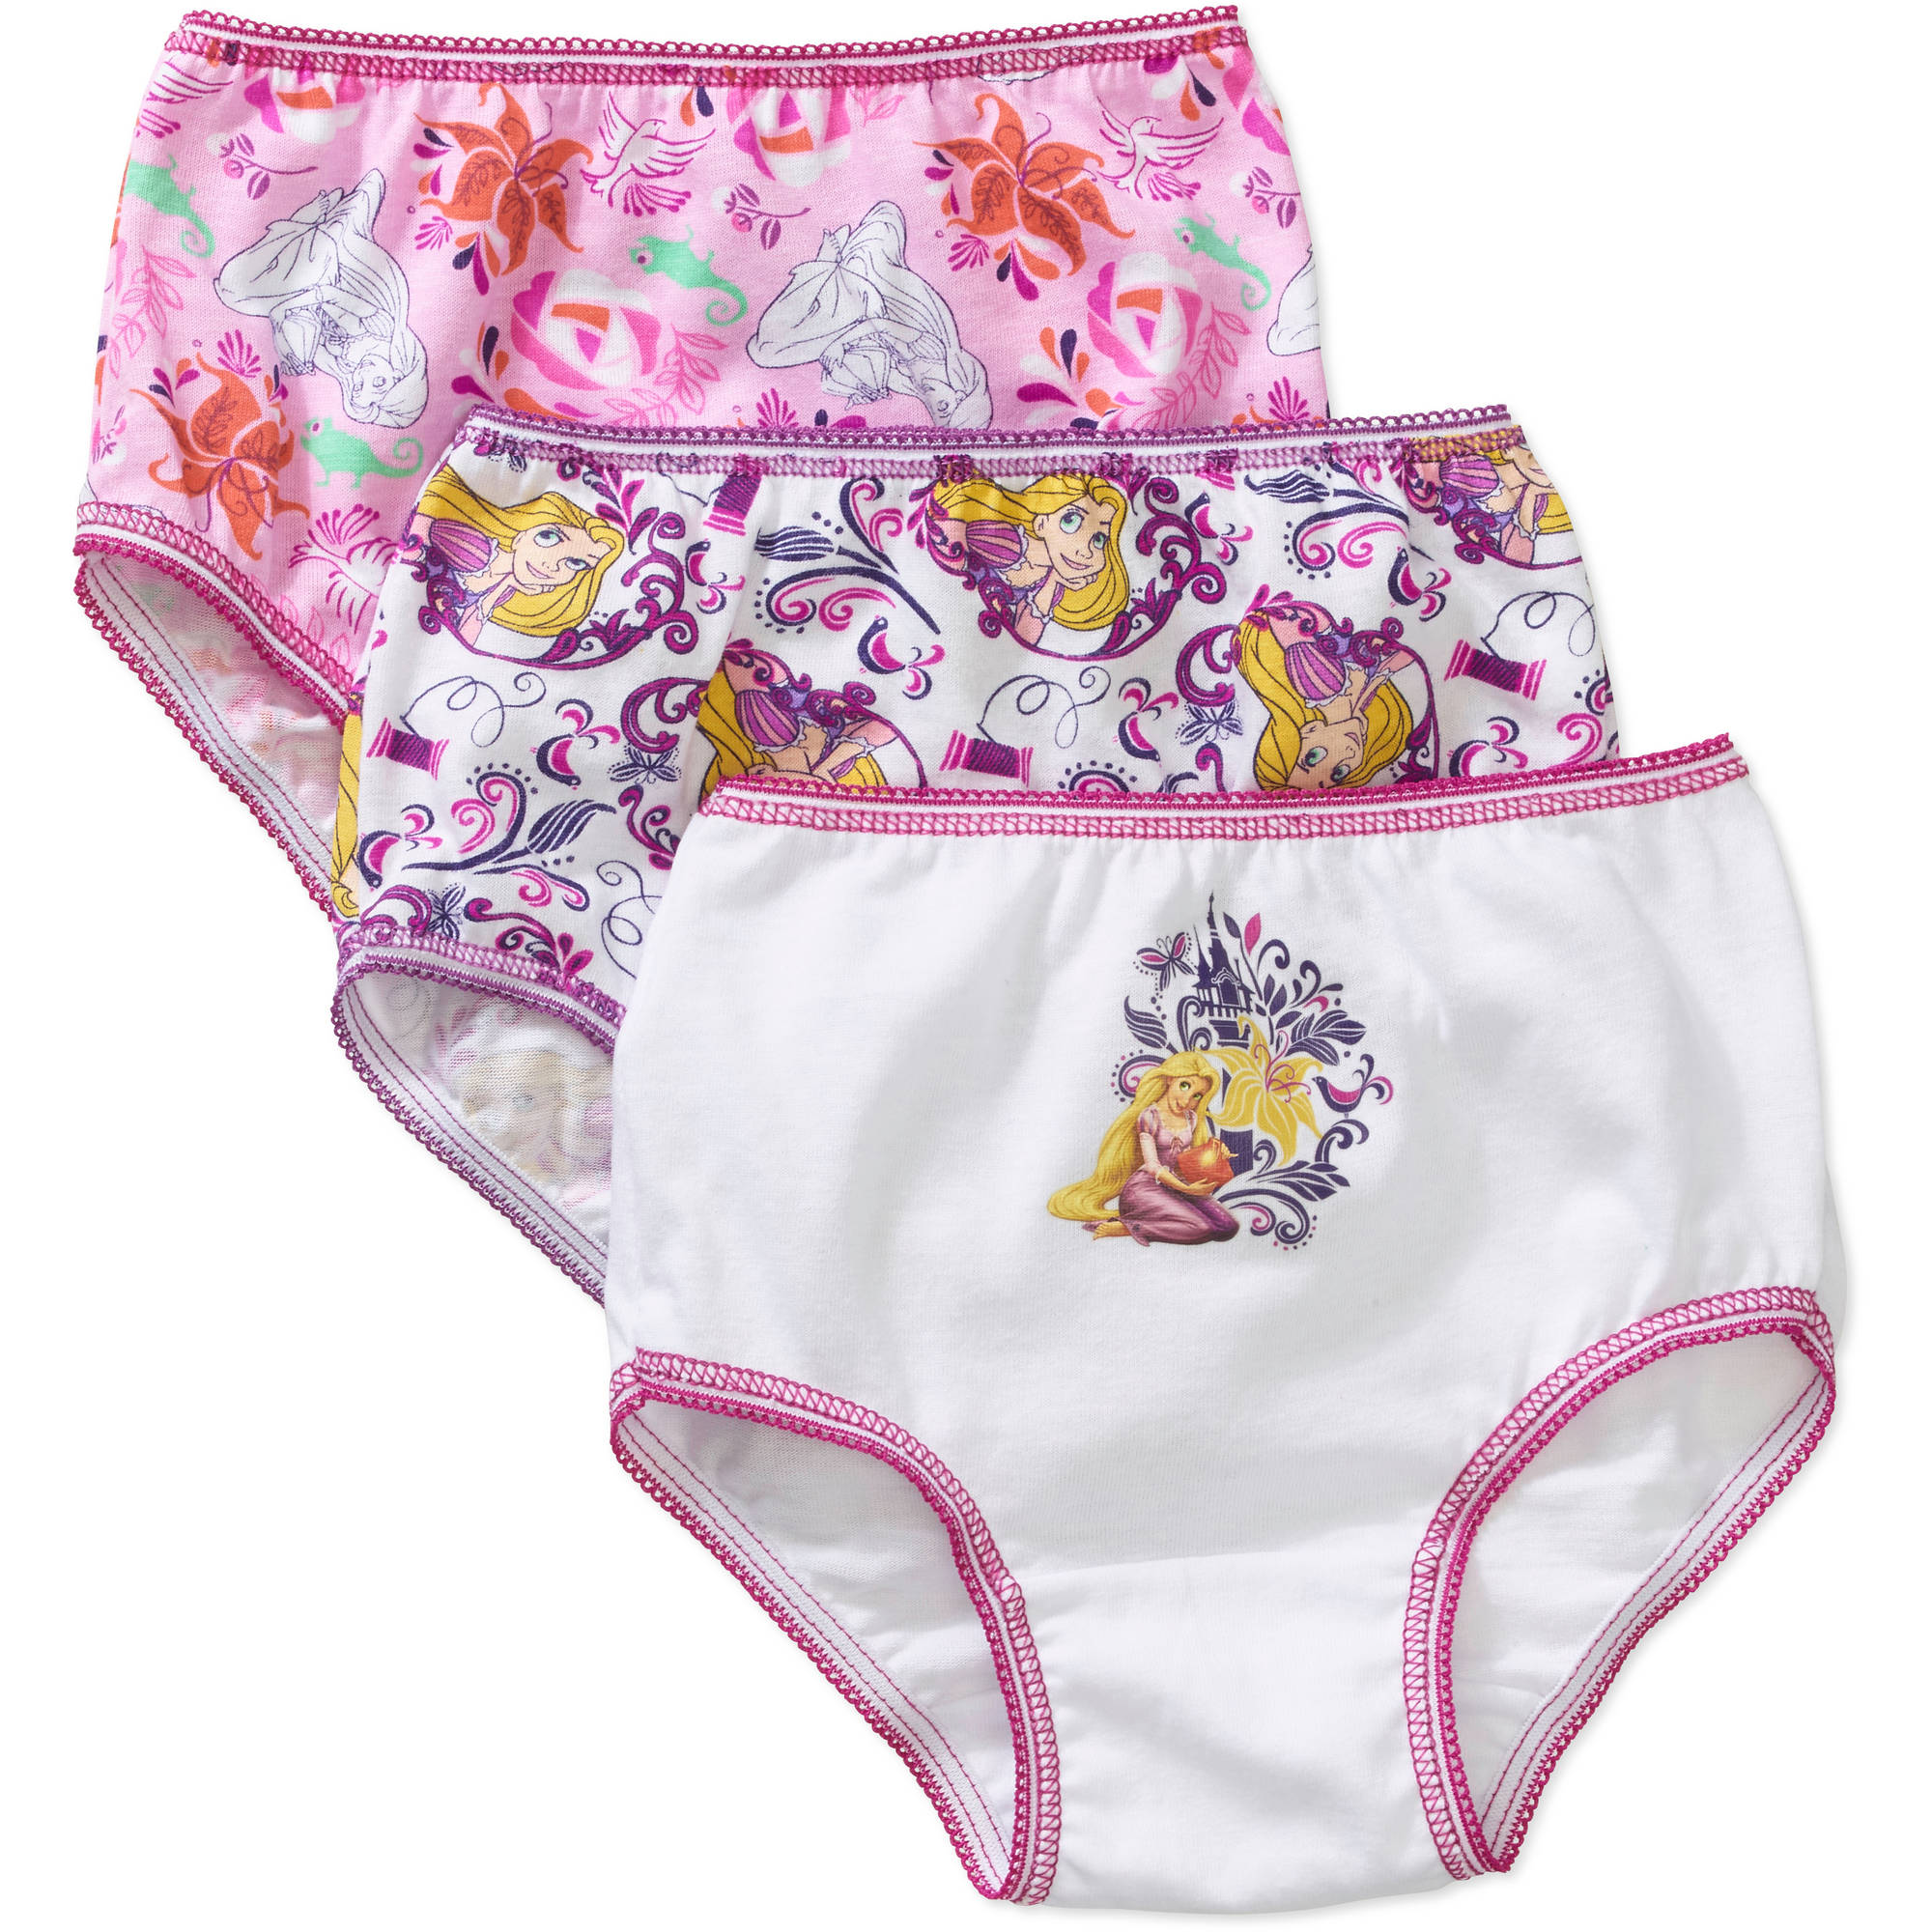 Disney Tangled Toddler Girls Underwear, 3 Pack